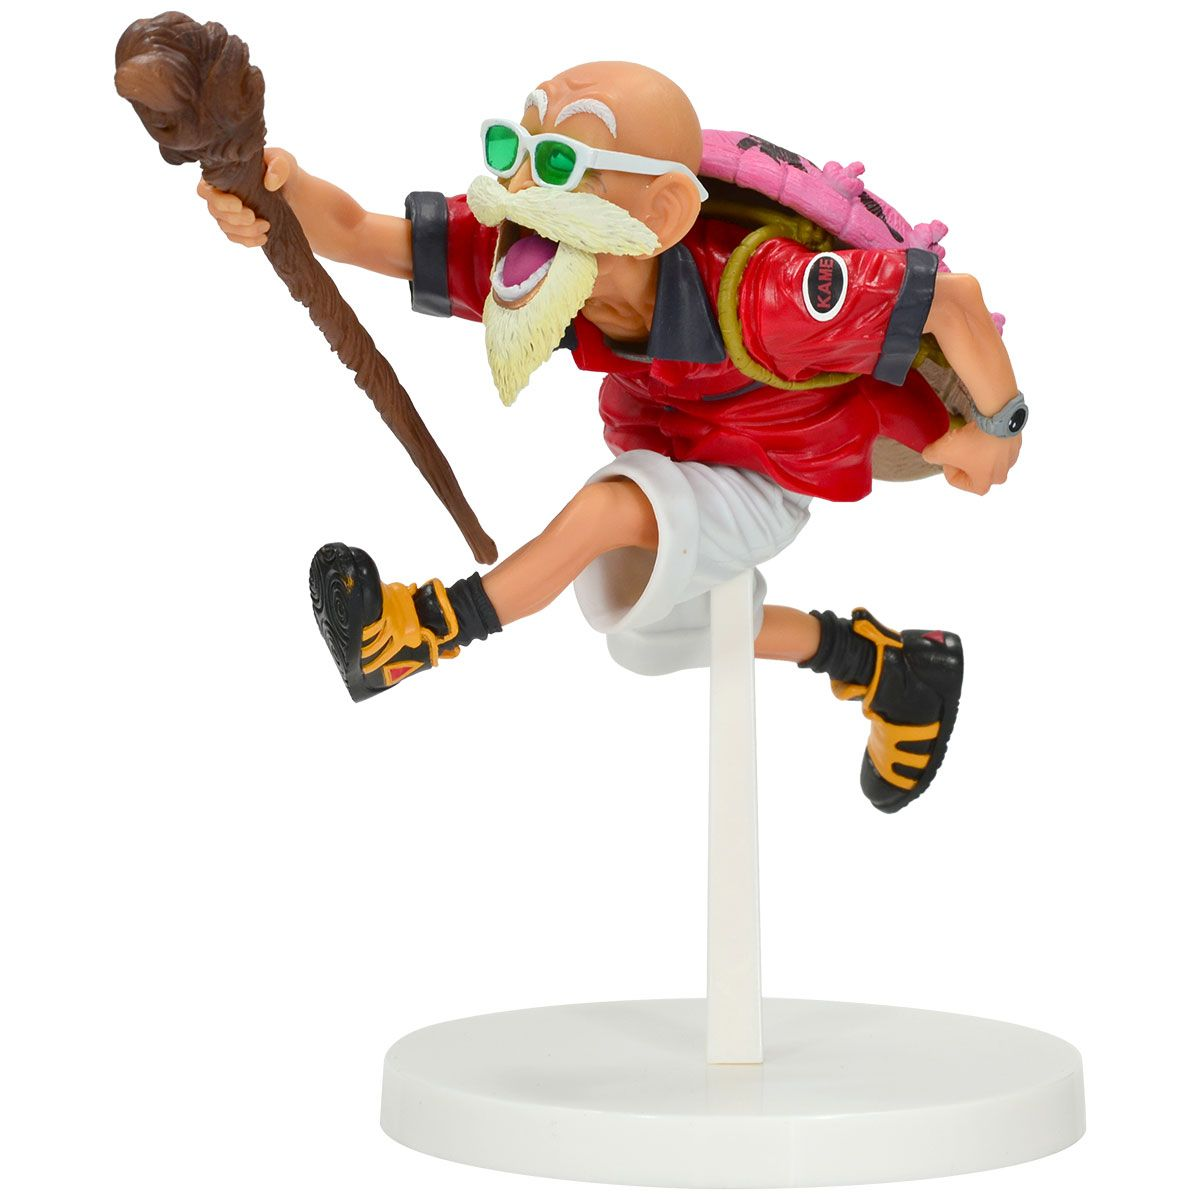 Estátua Mestre Kame (Tropical Color): Dragon Ball - Banpresto - CG